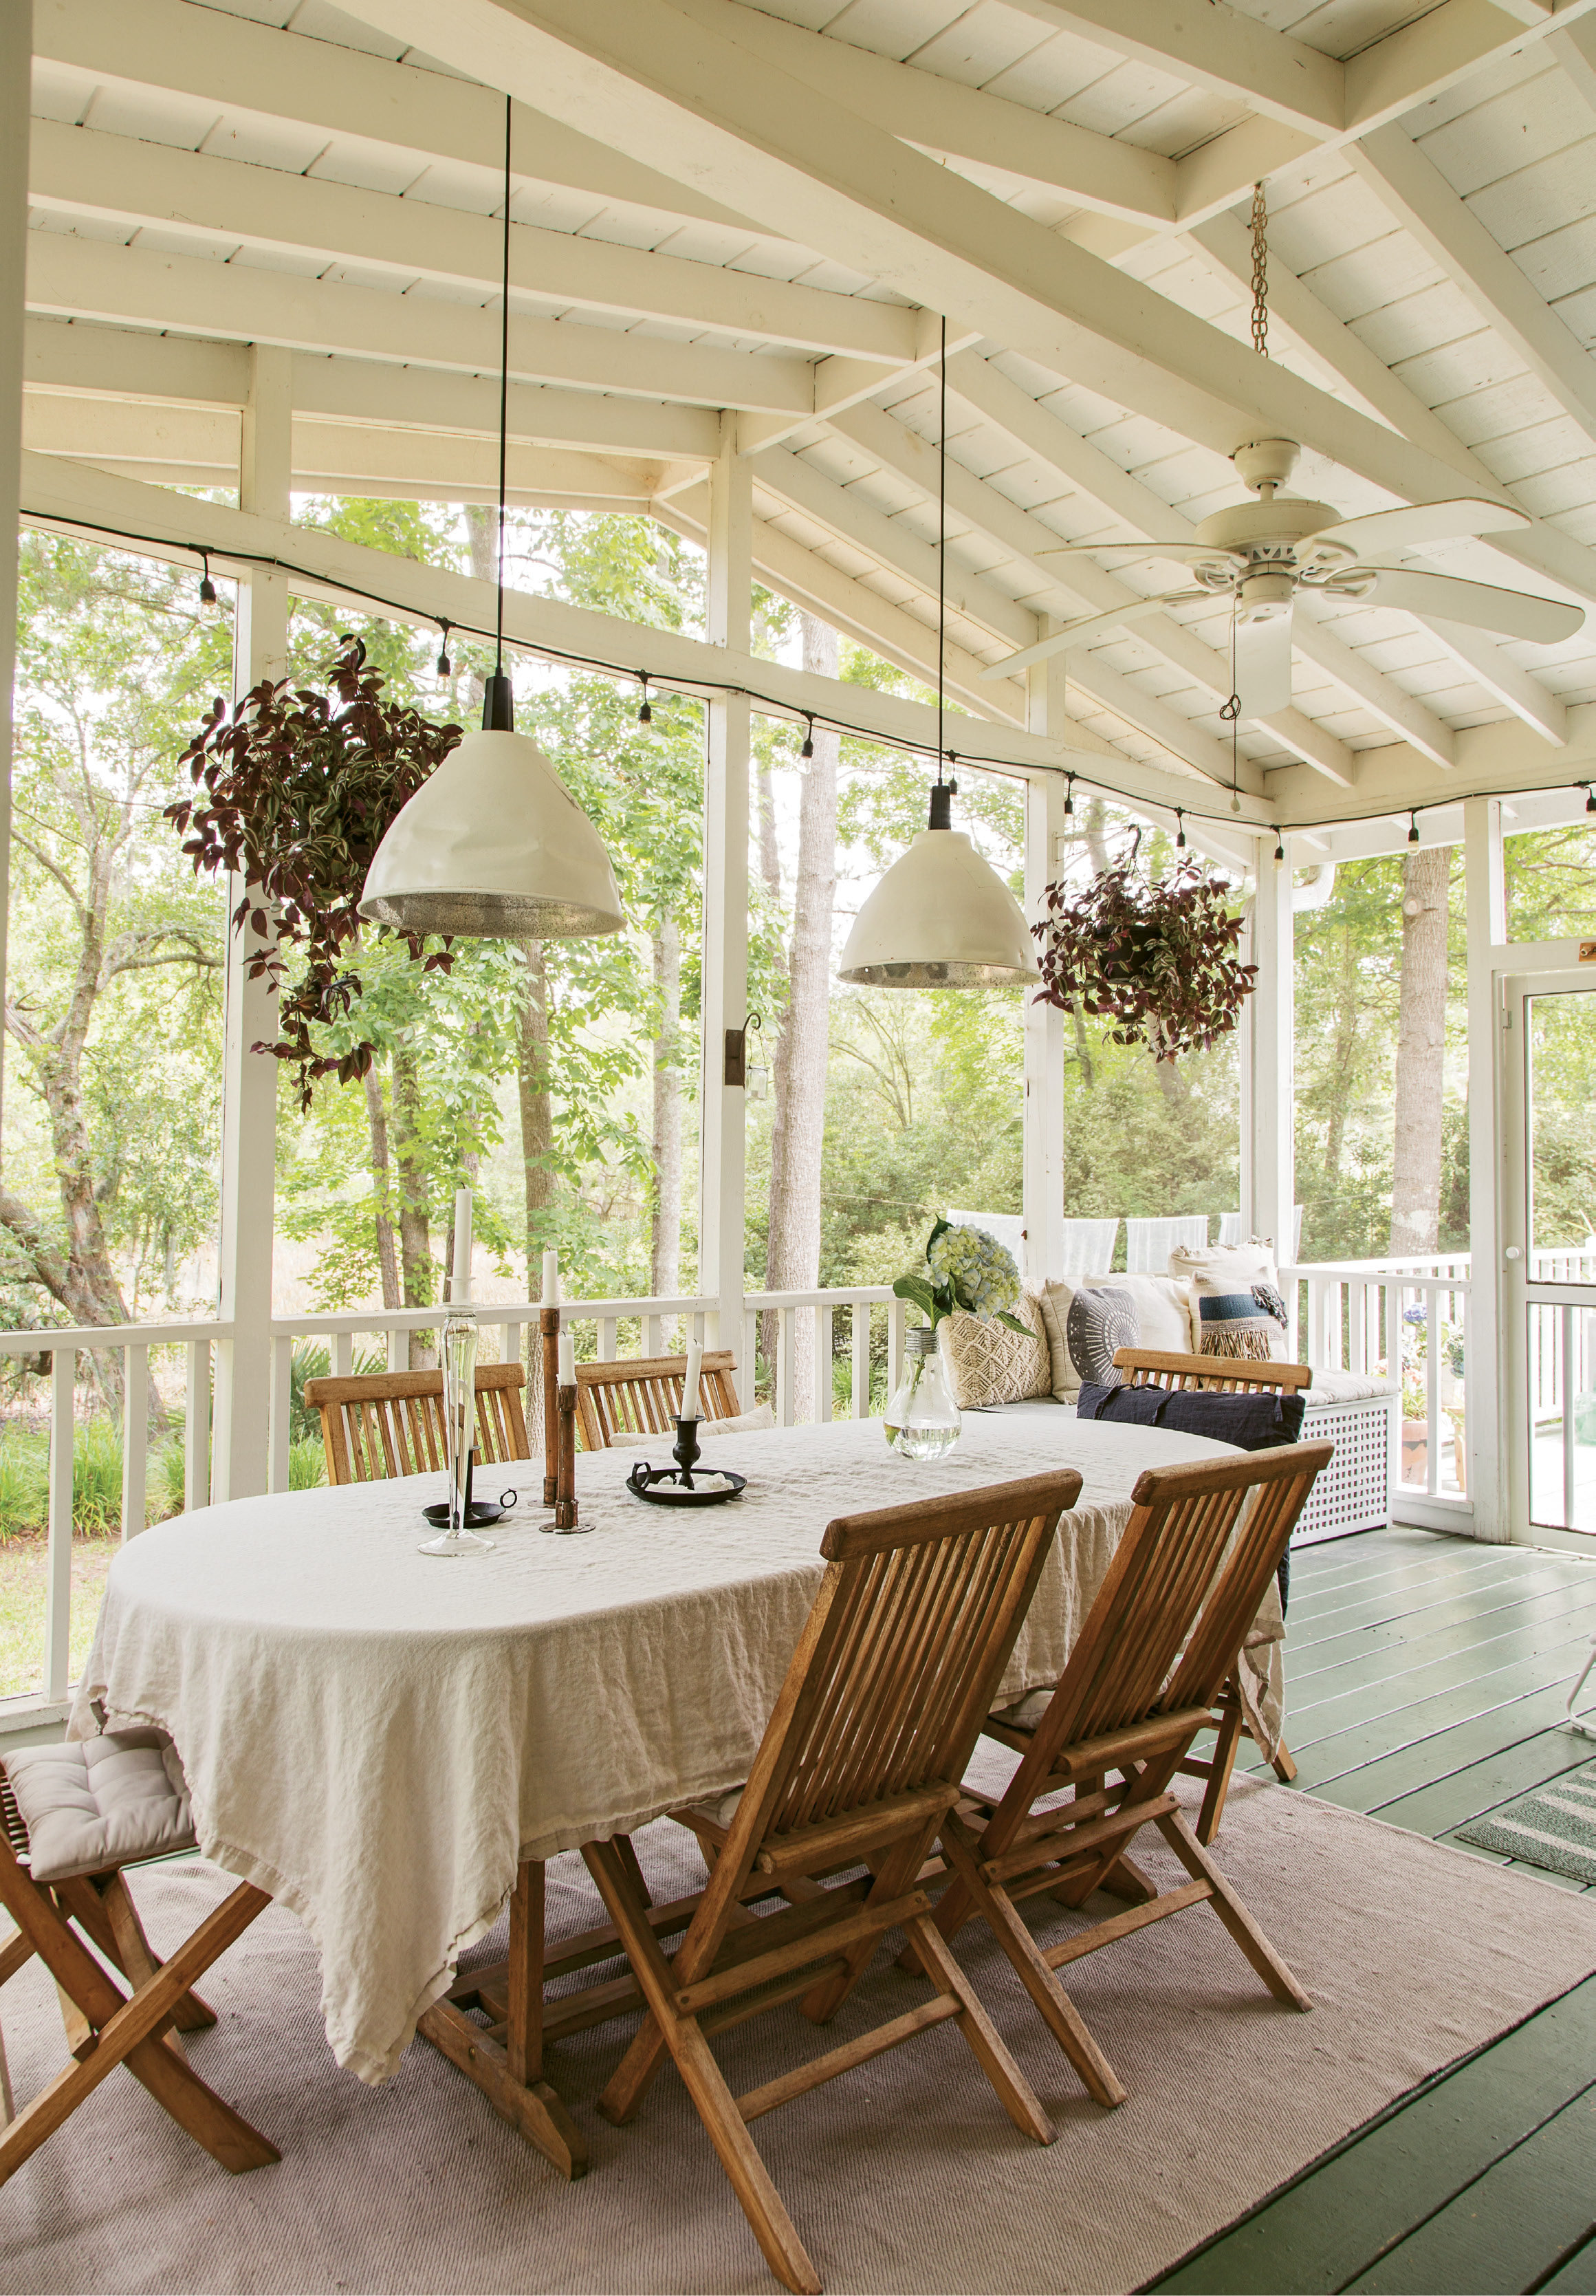 PORCH PARADISE: Winters in Gothenburg are harsh, so Therese and Jacob are loving the Lowcountry's mild climate. Mature trees and a long creek view make dining alfresco particularly pleasant, as do rustic wooden chairs, simple white linens, and soft light from pendant lamps and candles.